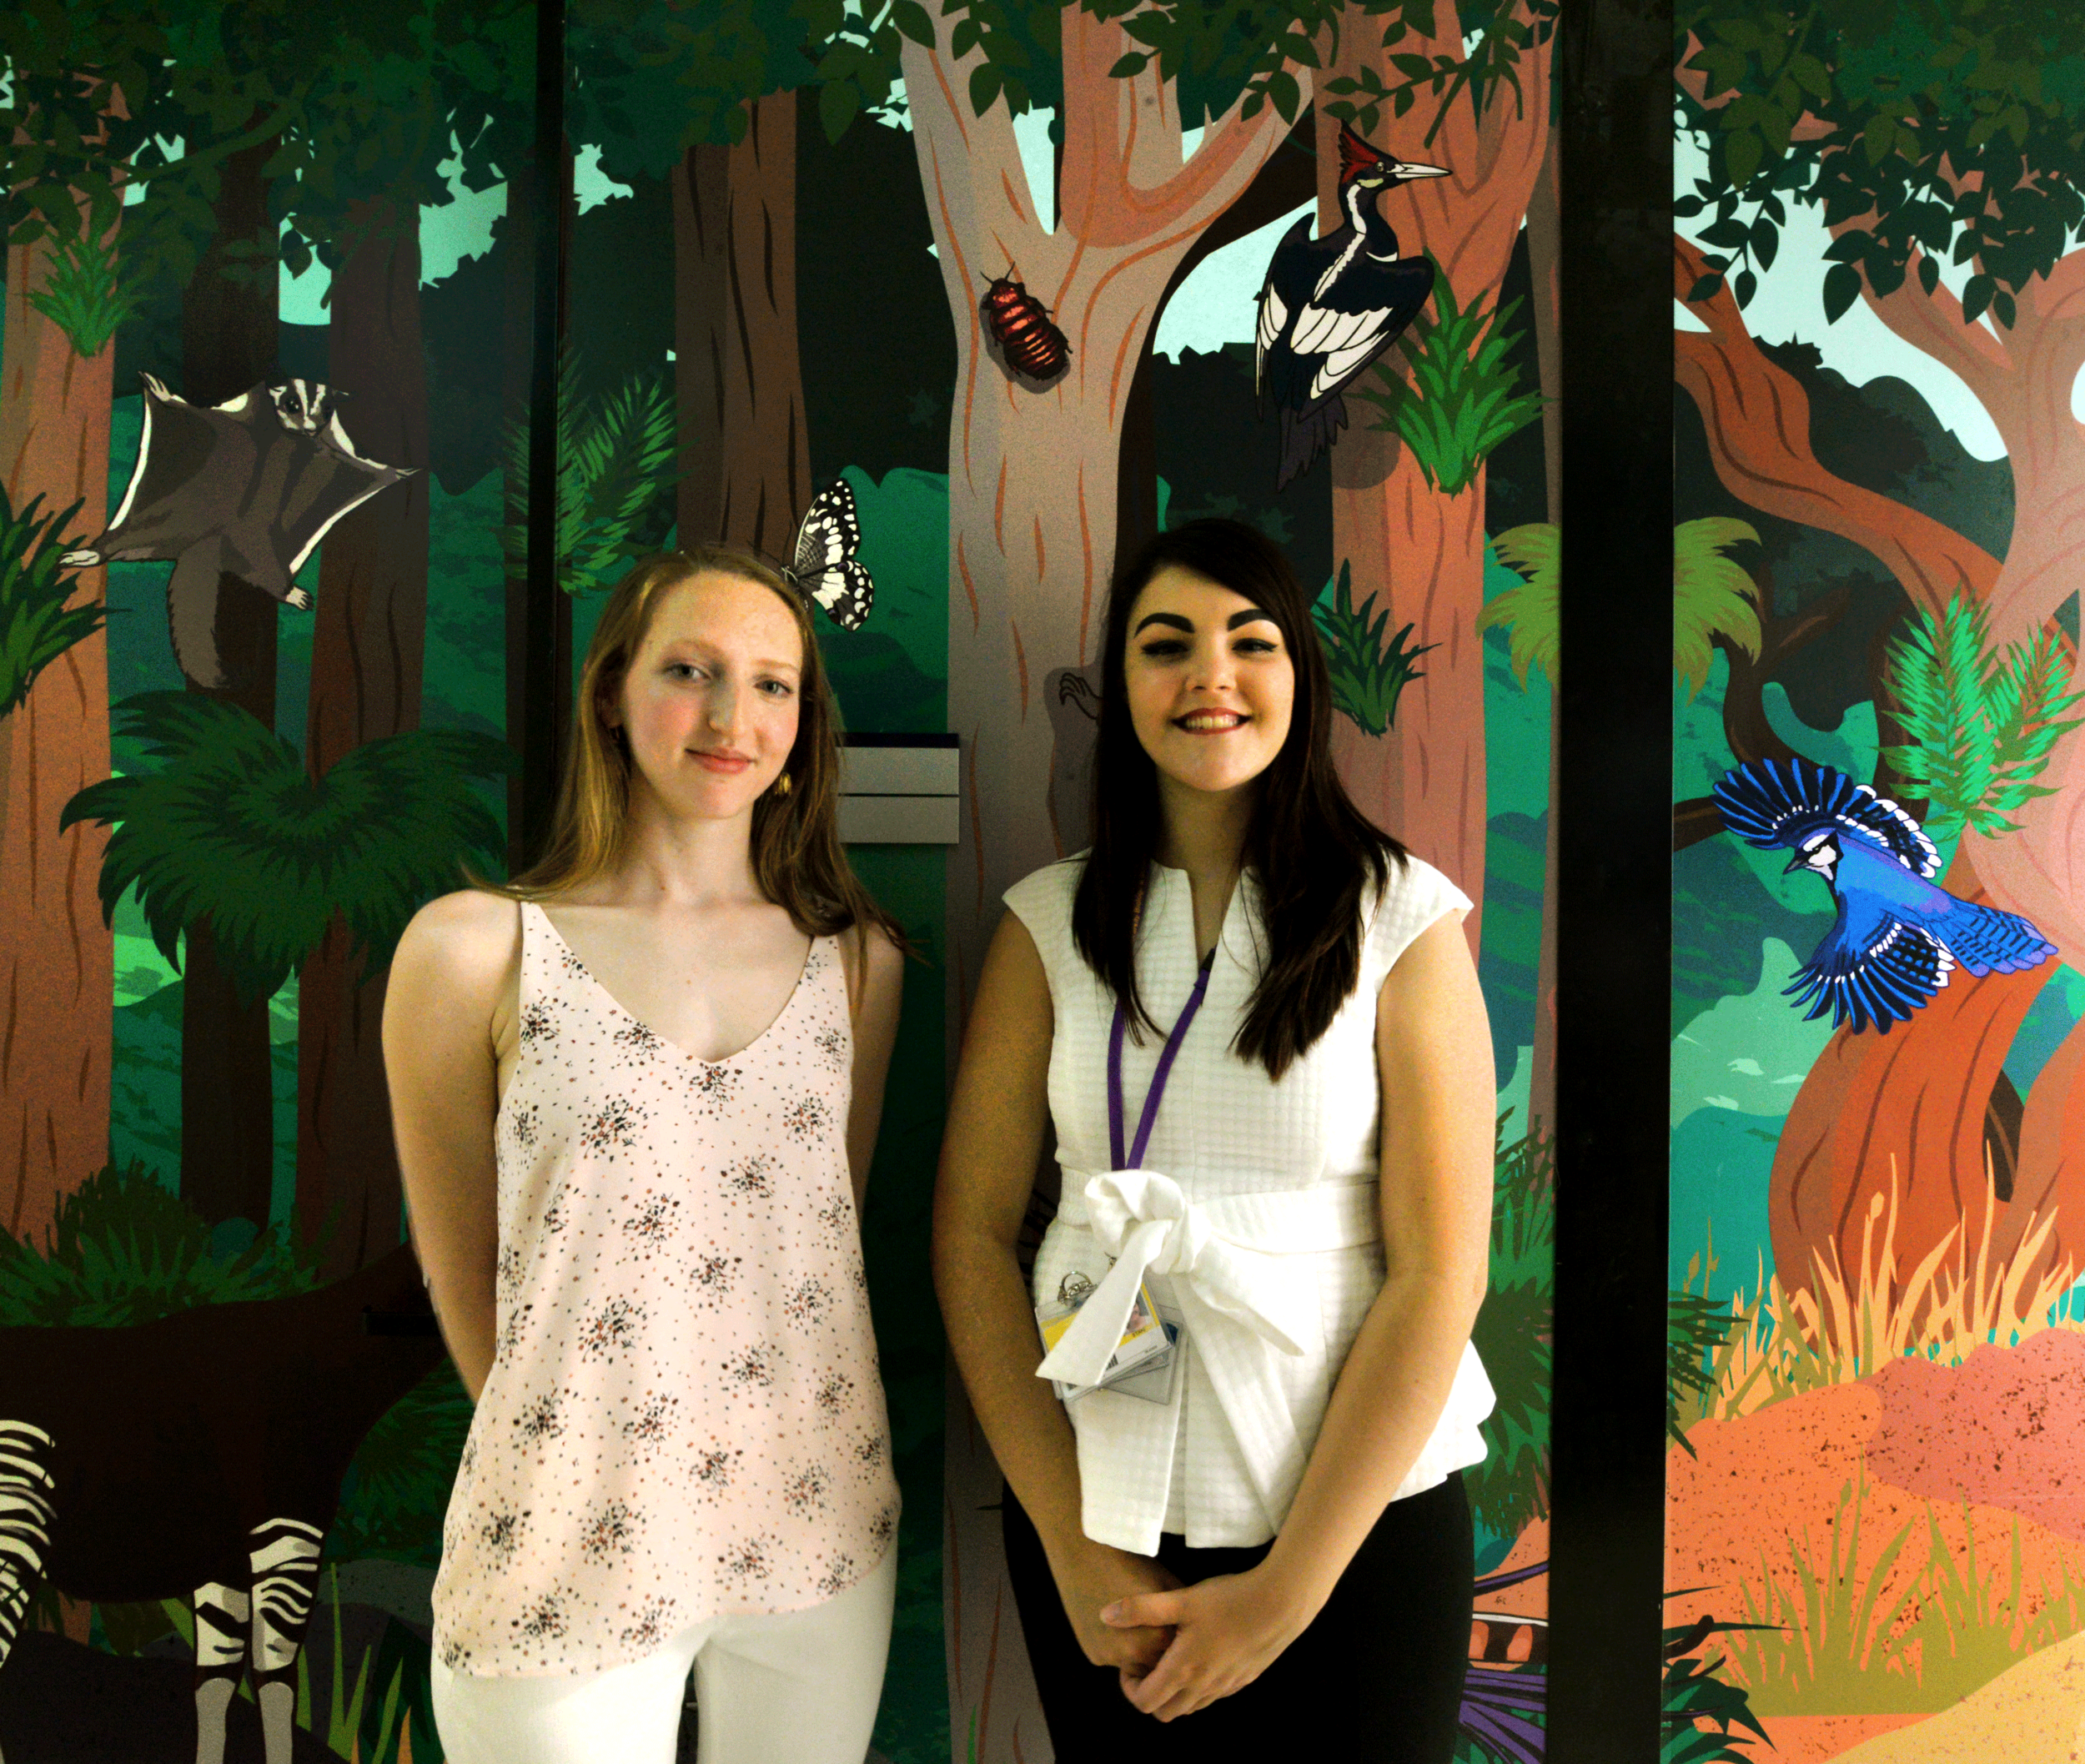 Illustrators Erin Abell from Animate Your Science (left) and René Campbell (right)